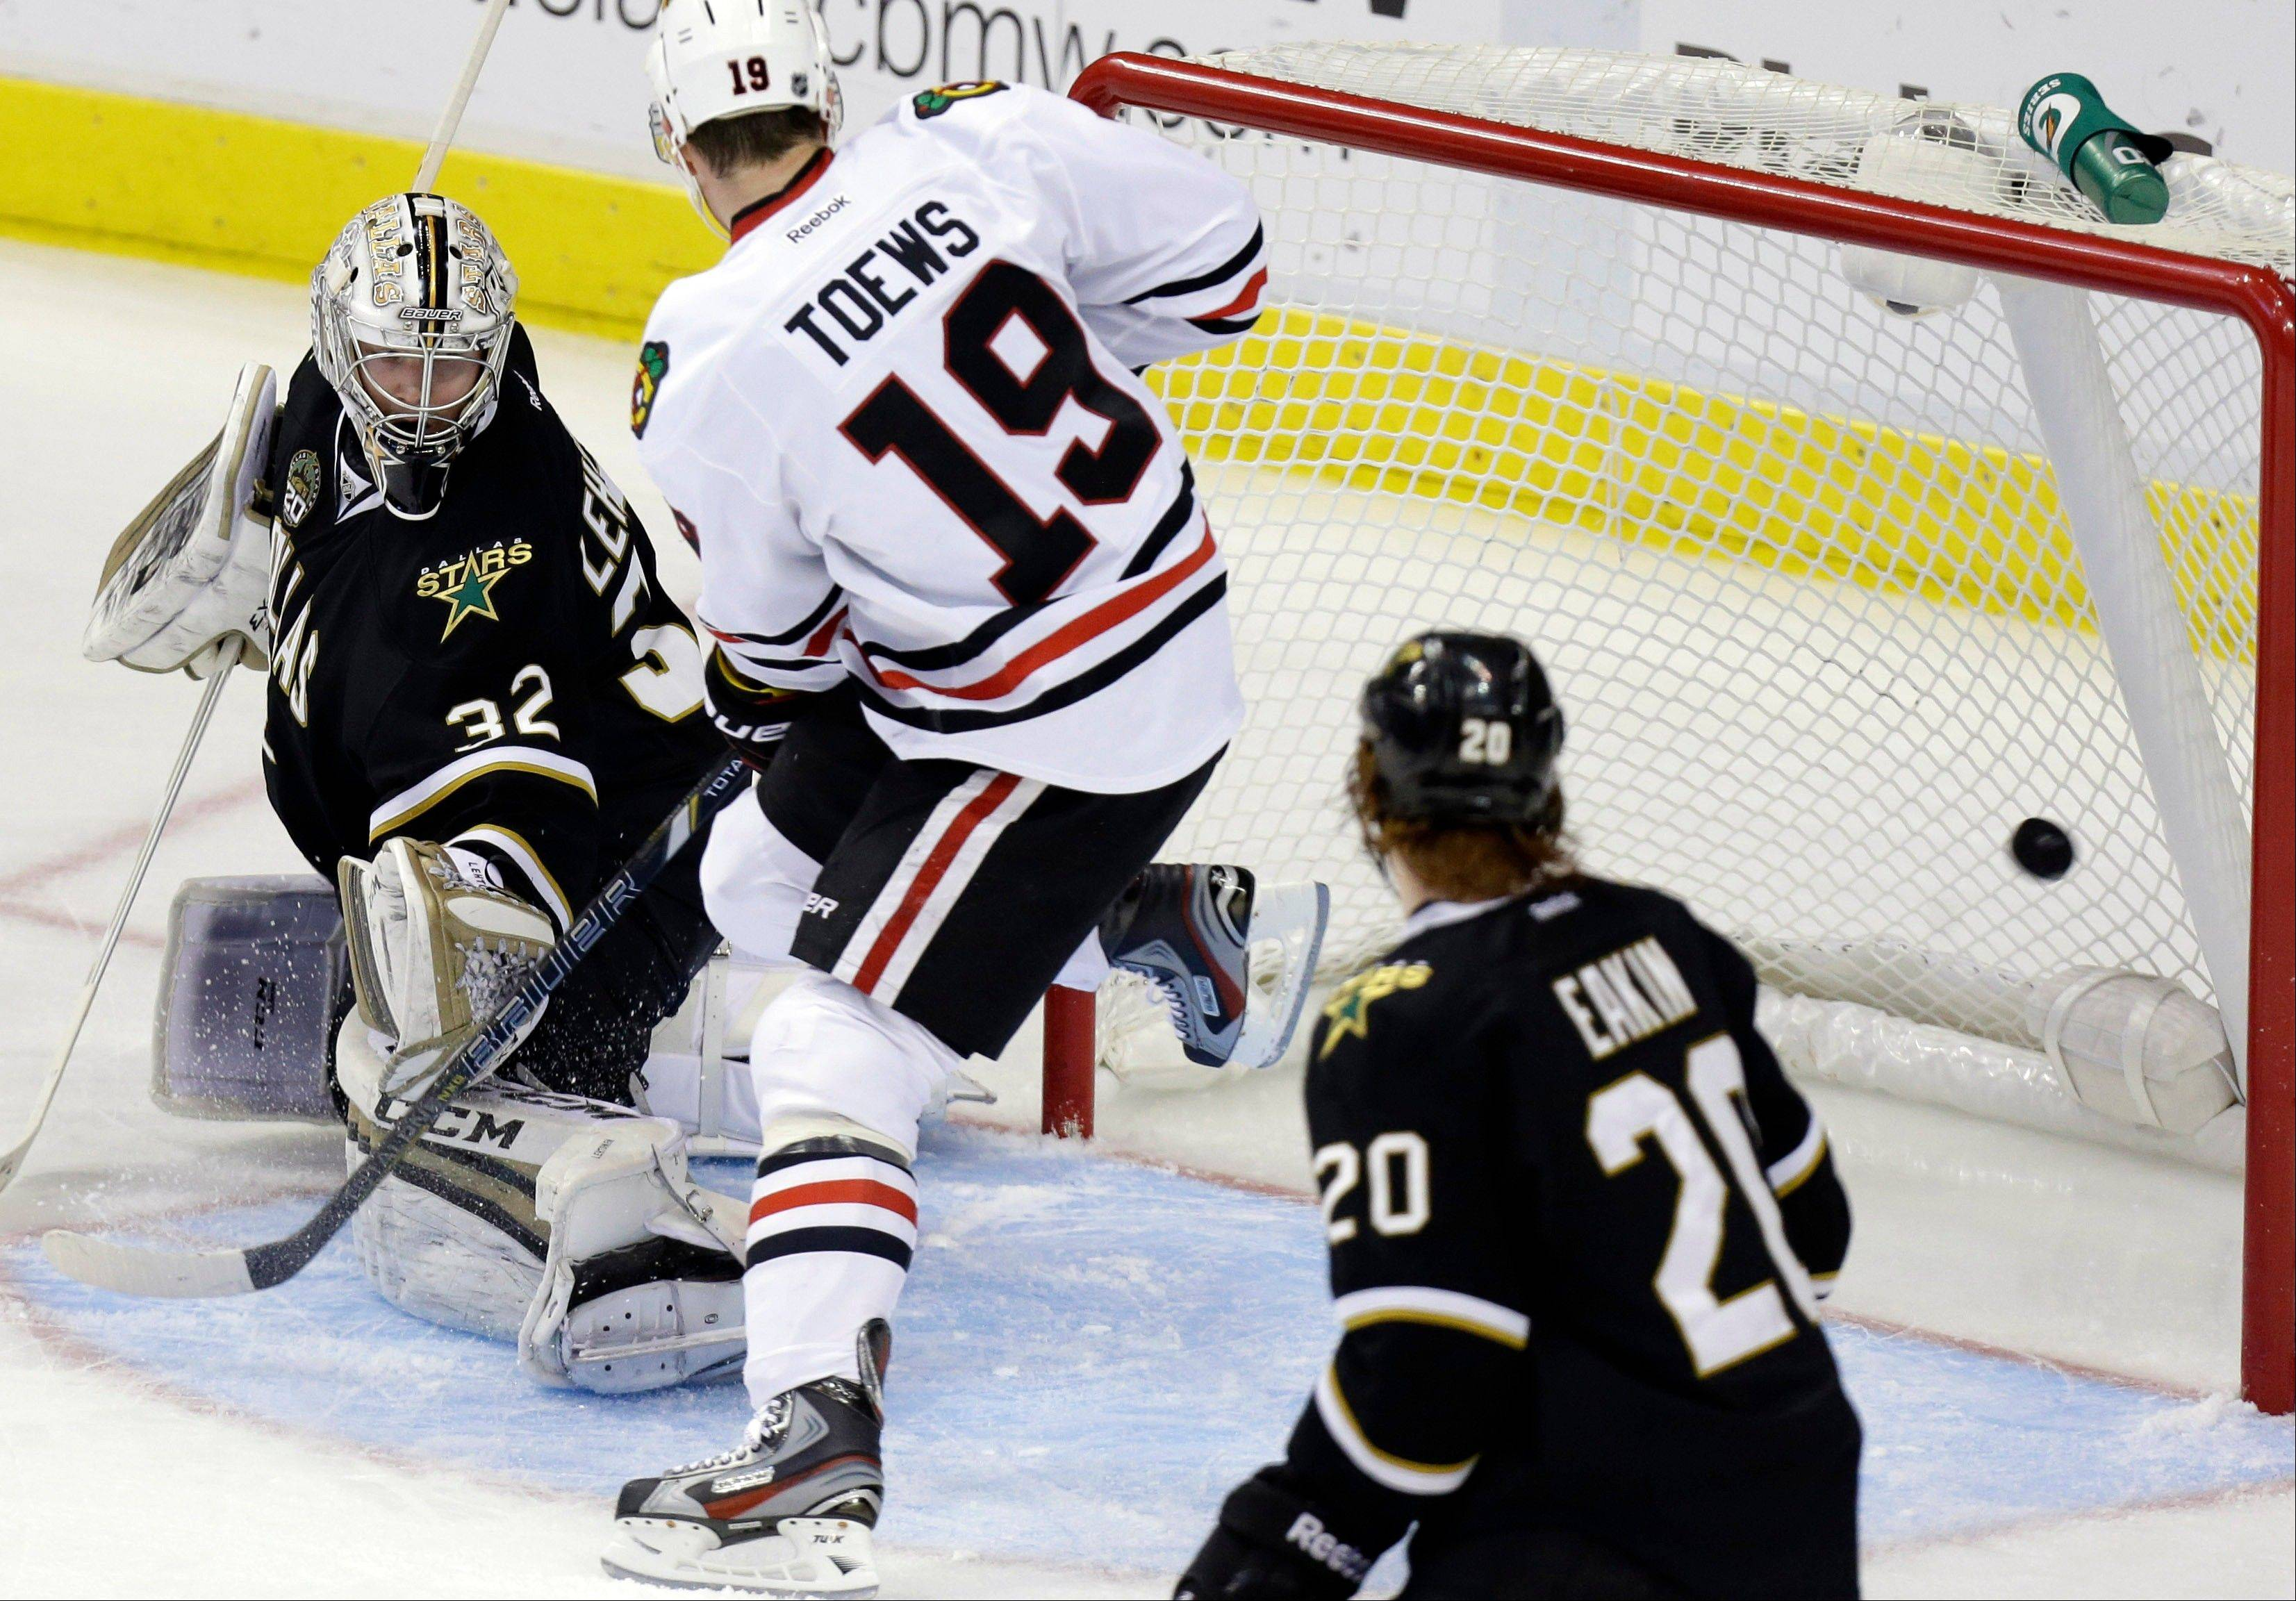 Jonathan Toews scores a goal against Stars goalie Kari Lehtonen on Saturday night. Toews and Marian Hossa each had 2 goals in the rout.